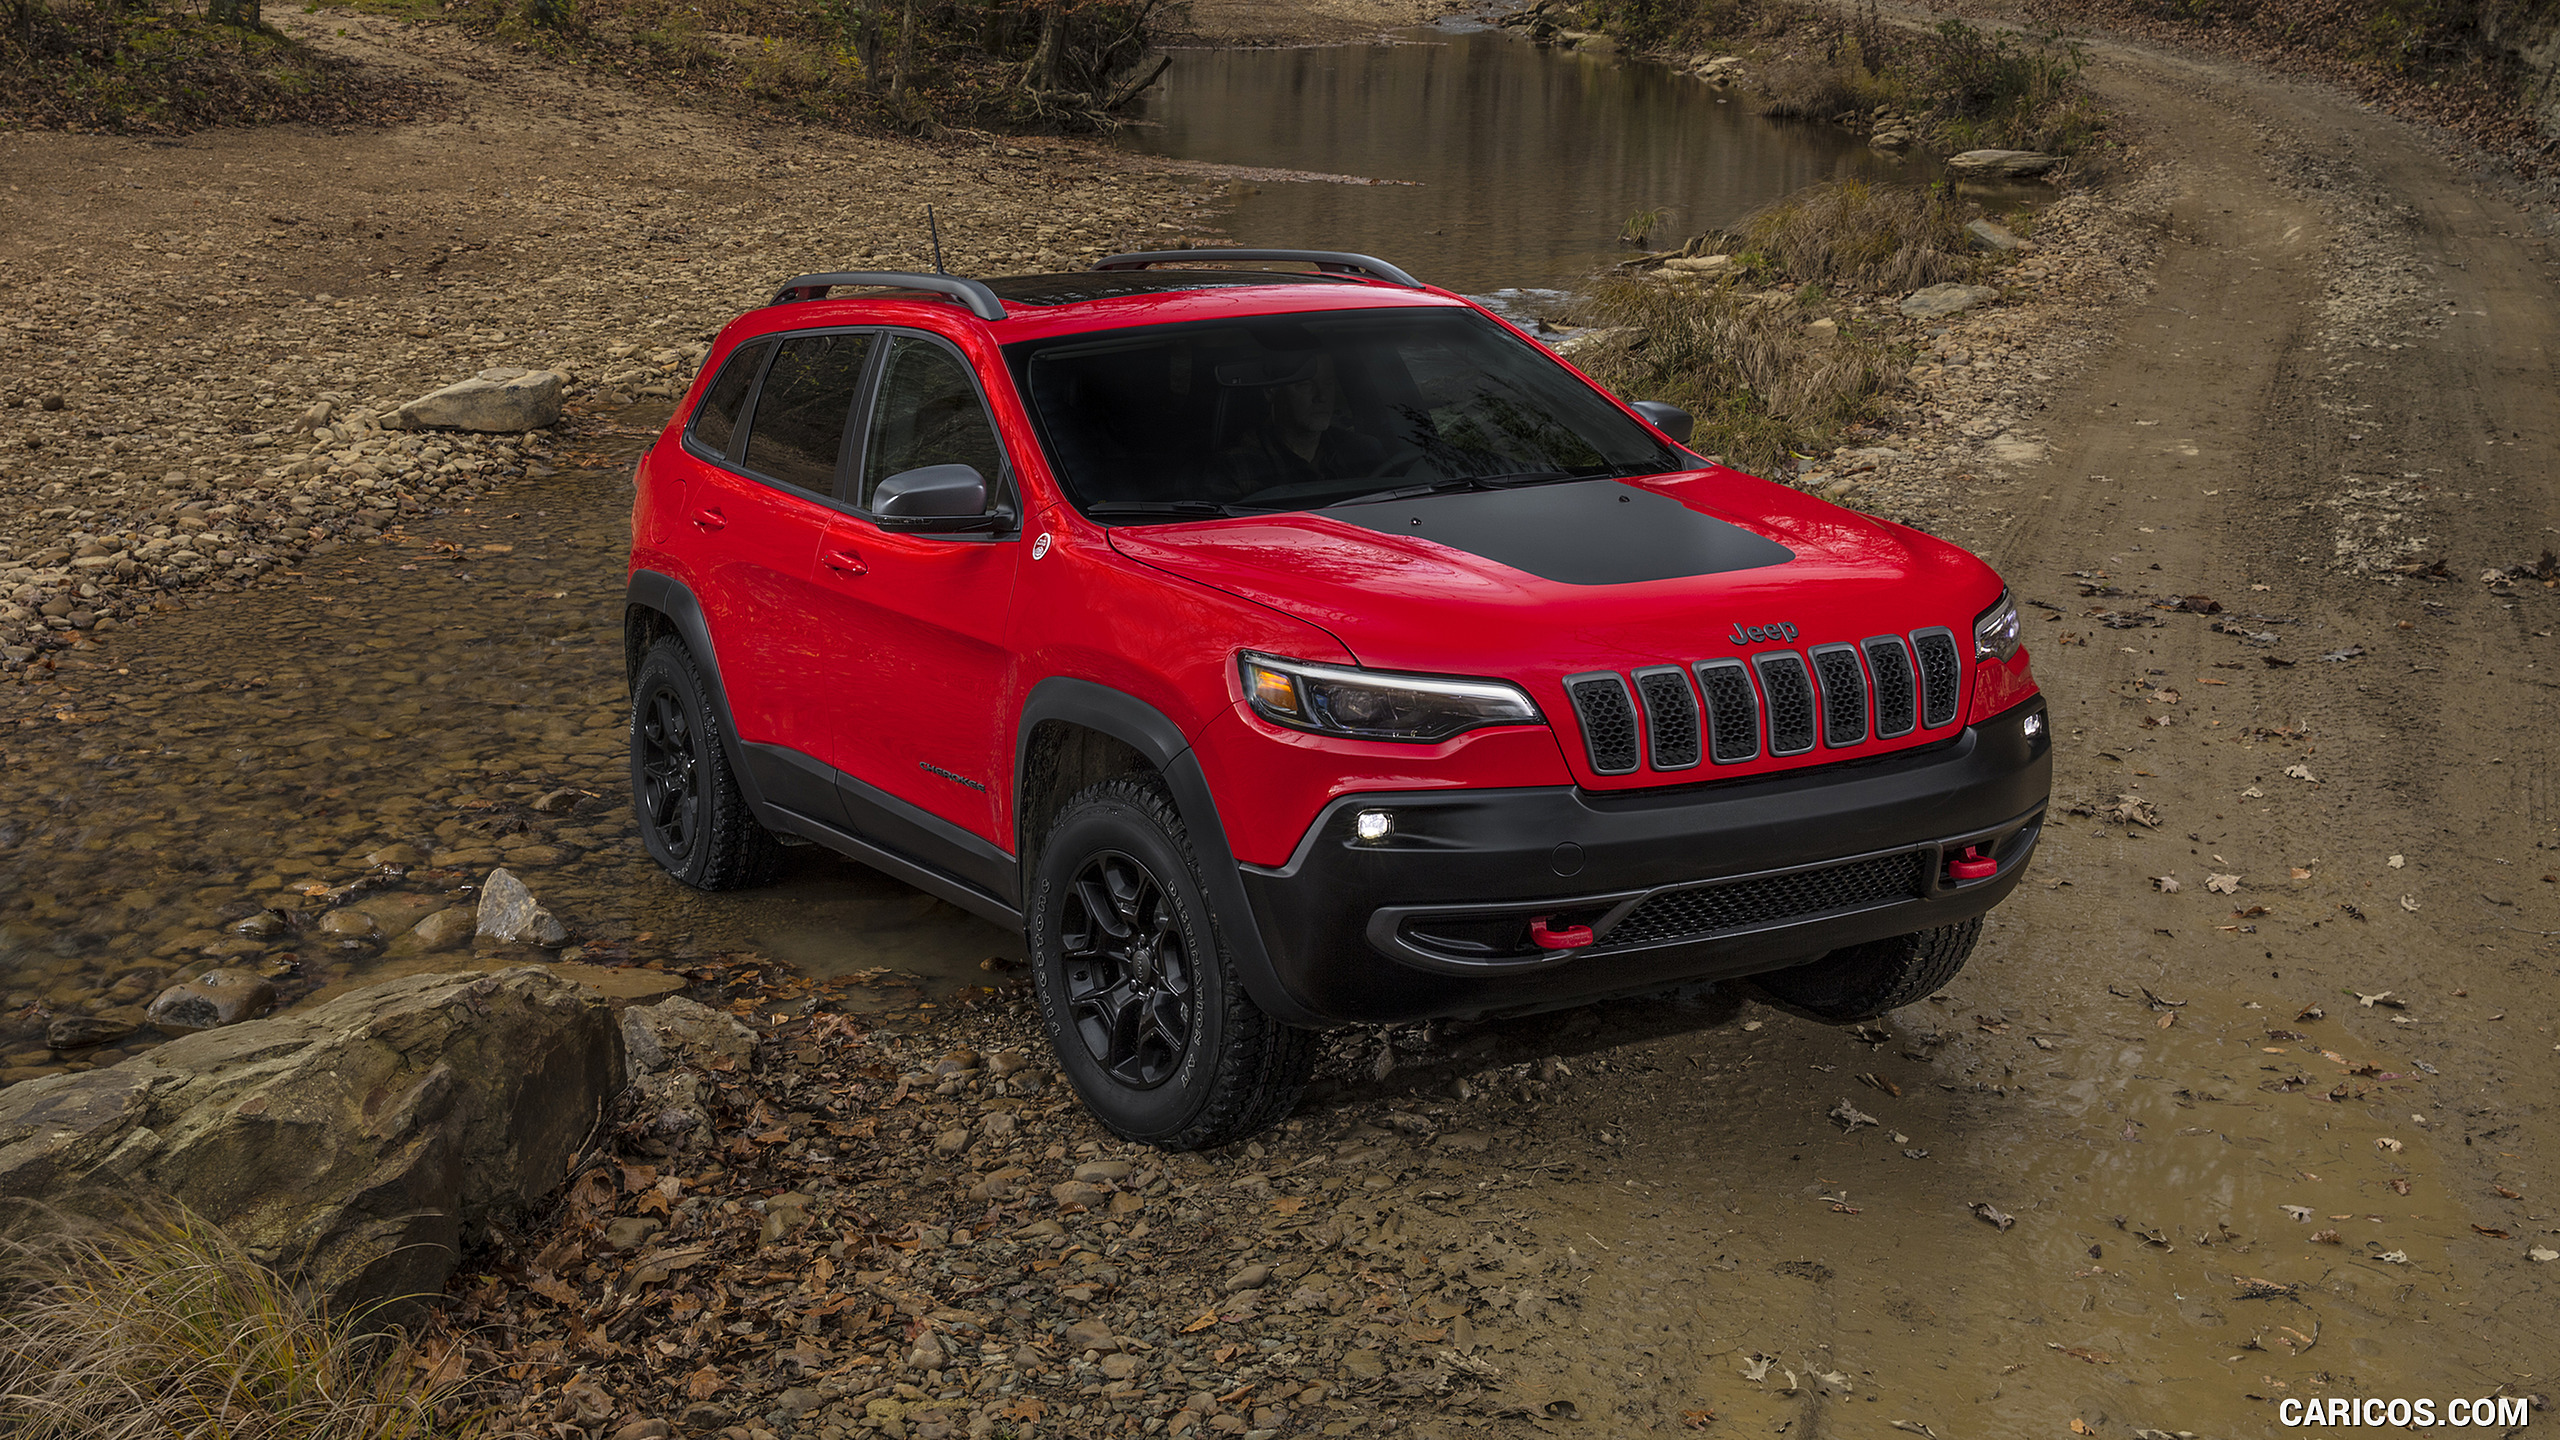 2019 Jeep Cherokee Trailhawk   Off Road HD Wallpaper 38 2560x1440